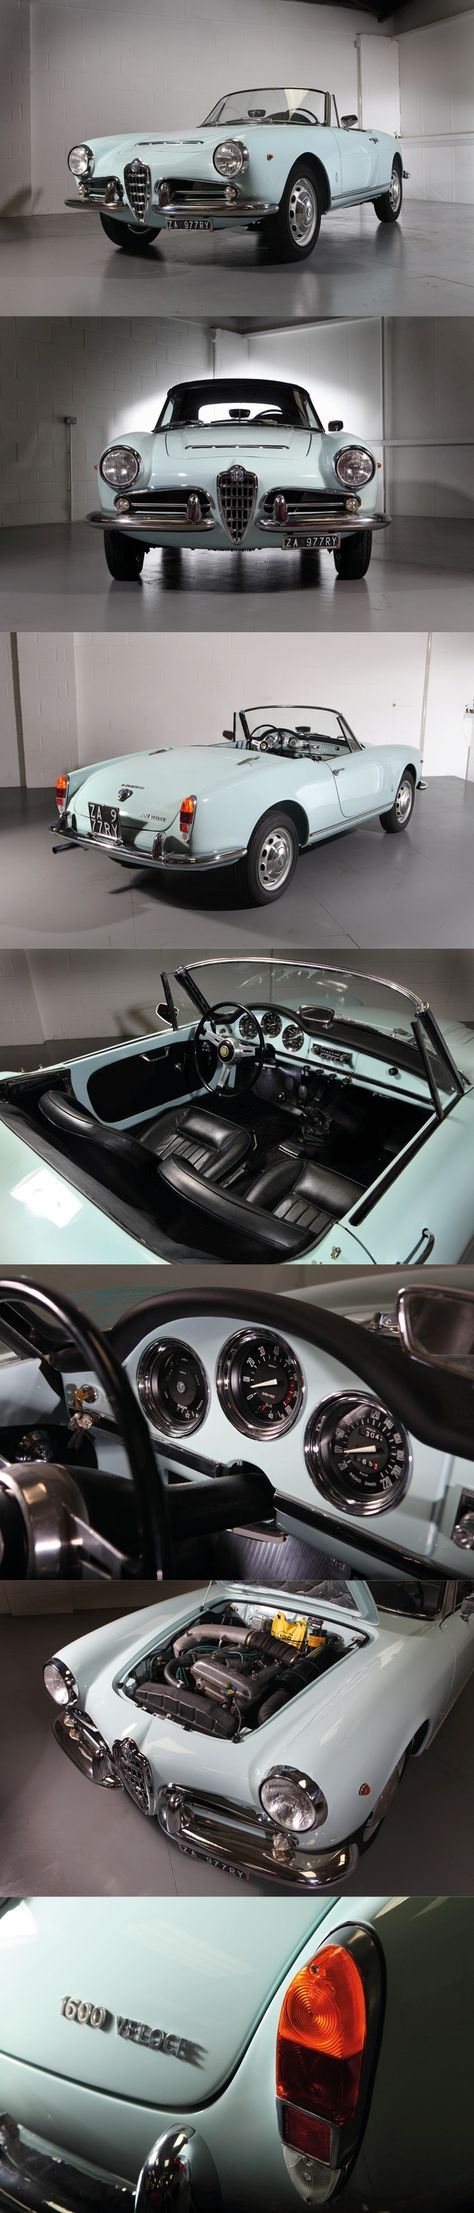 144 best Classic cars images on Pinterest | Old school cars, Vintage ...